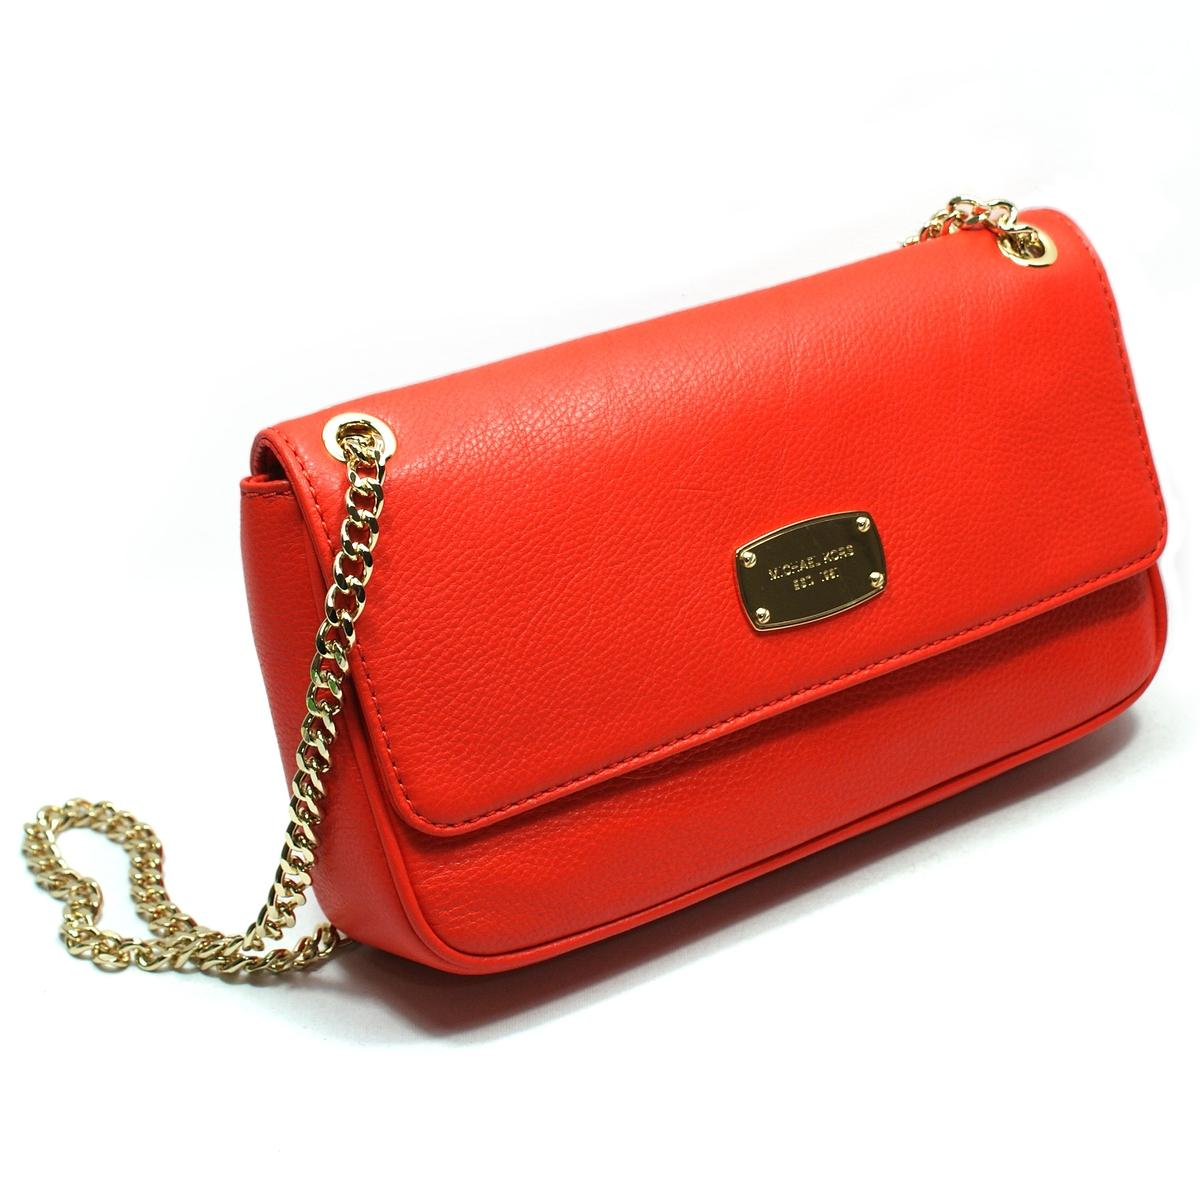 997ed5a1a6f3 ... in Home · Michael Kors · Jet Set Chain Genuine Leather Small Flap Shoulder  Bag Mandarin.